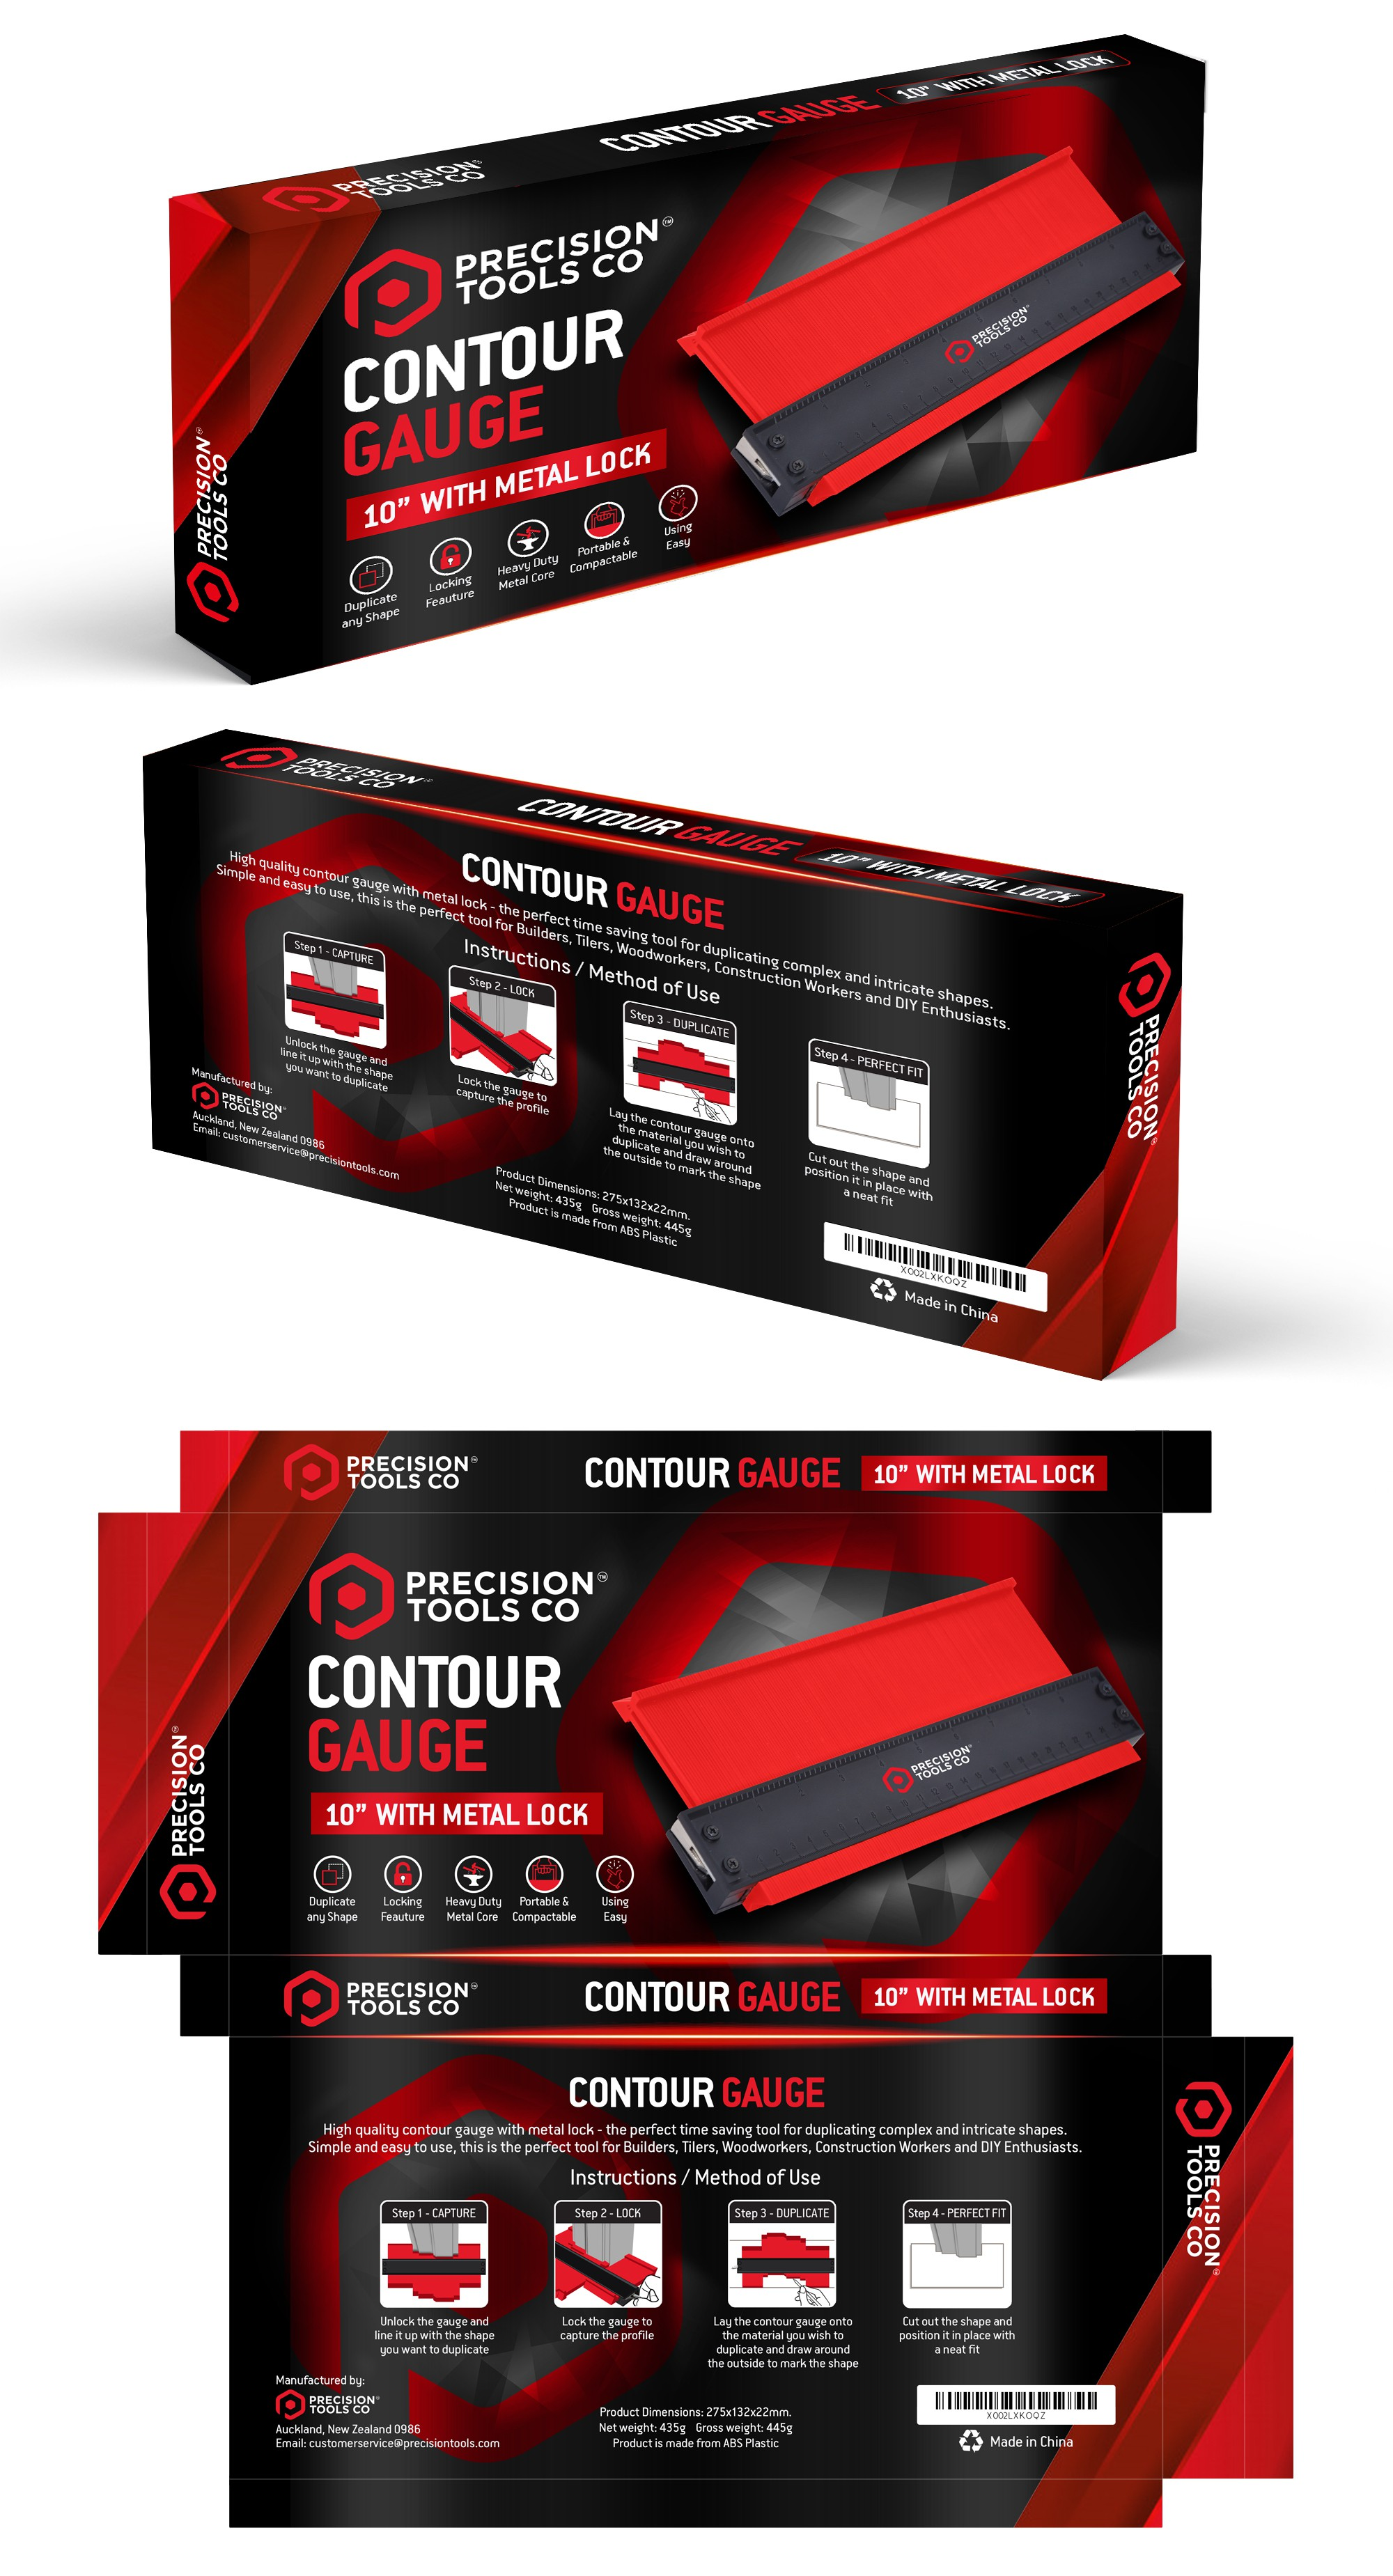 Precision Tools Co Packaging Design